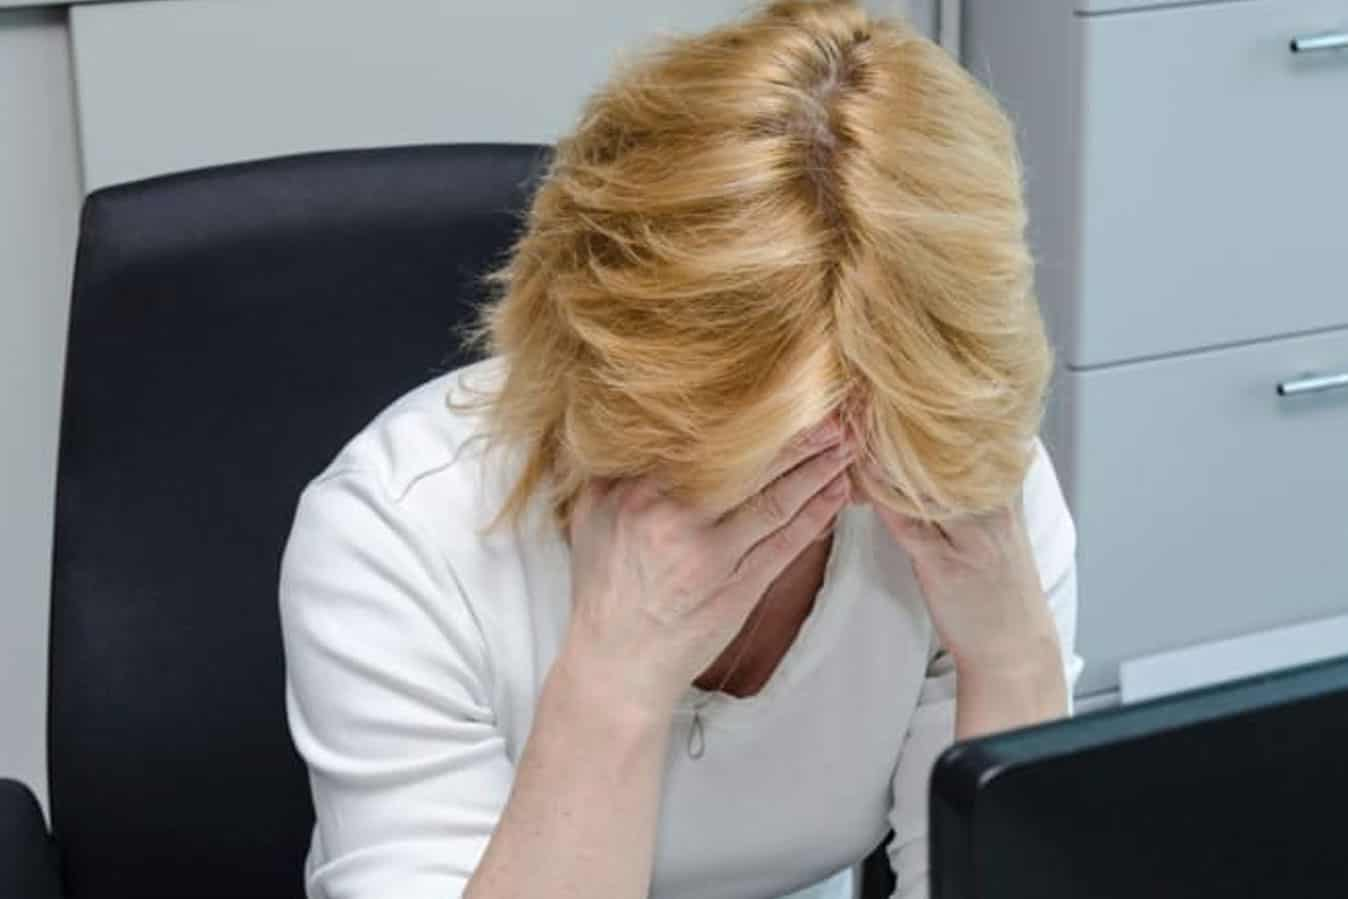 Bullying common among nurses says research